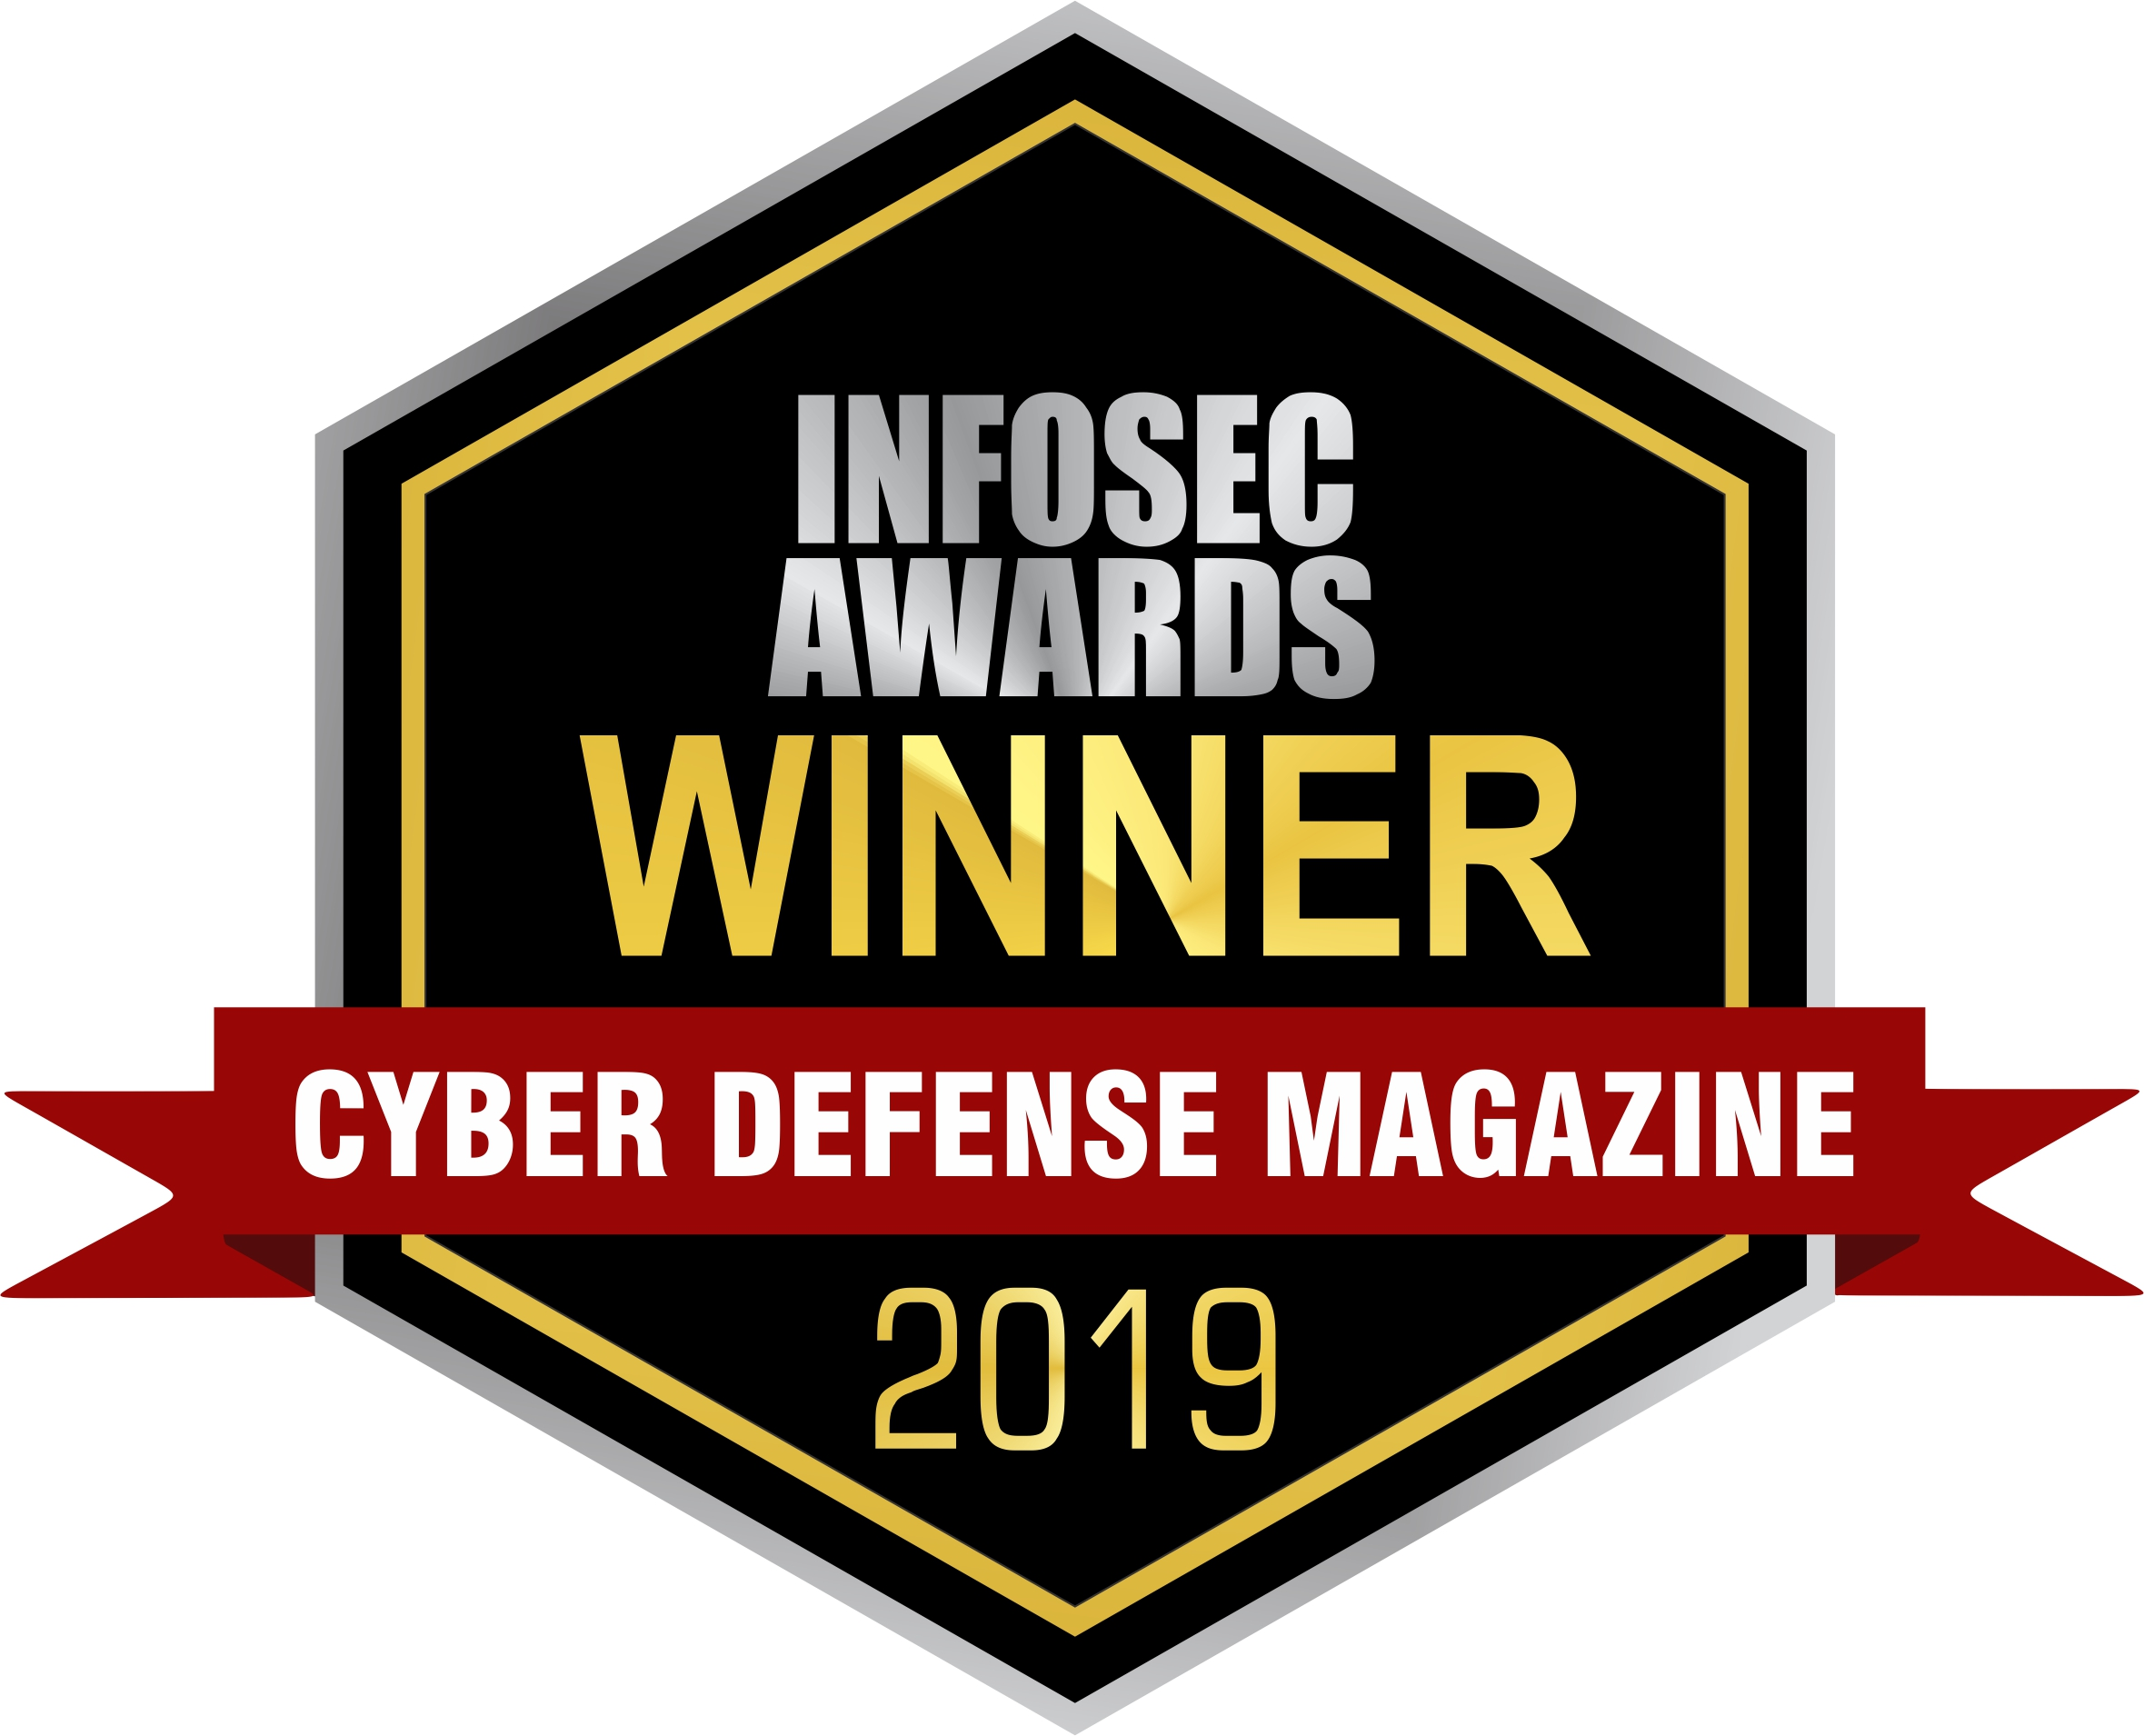 Contrast Security wins Cyber Defense Magazine